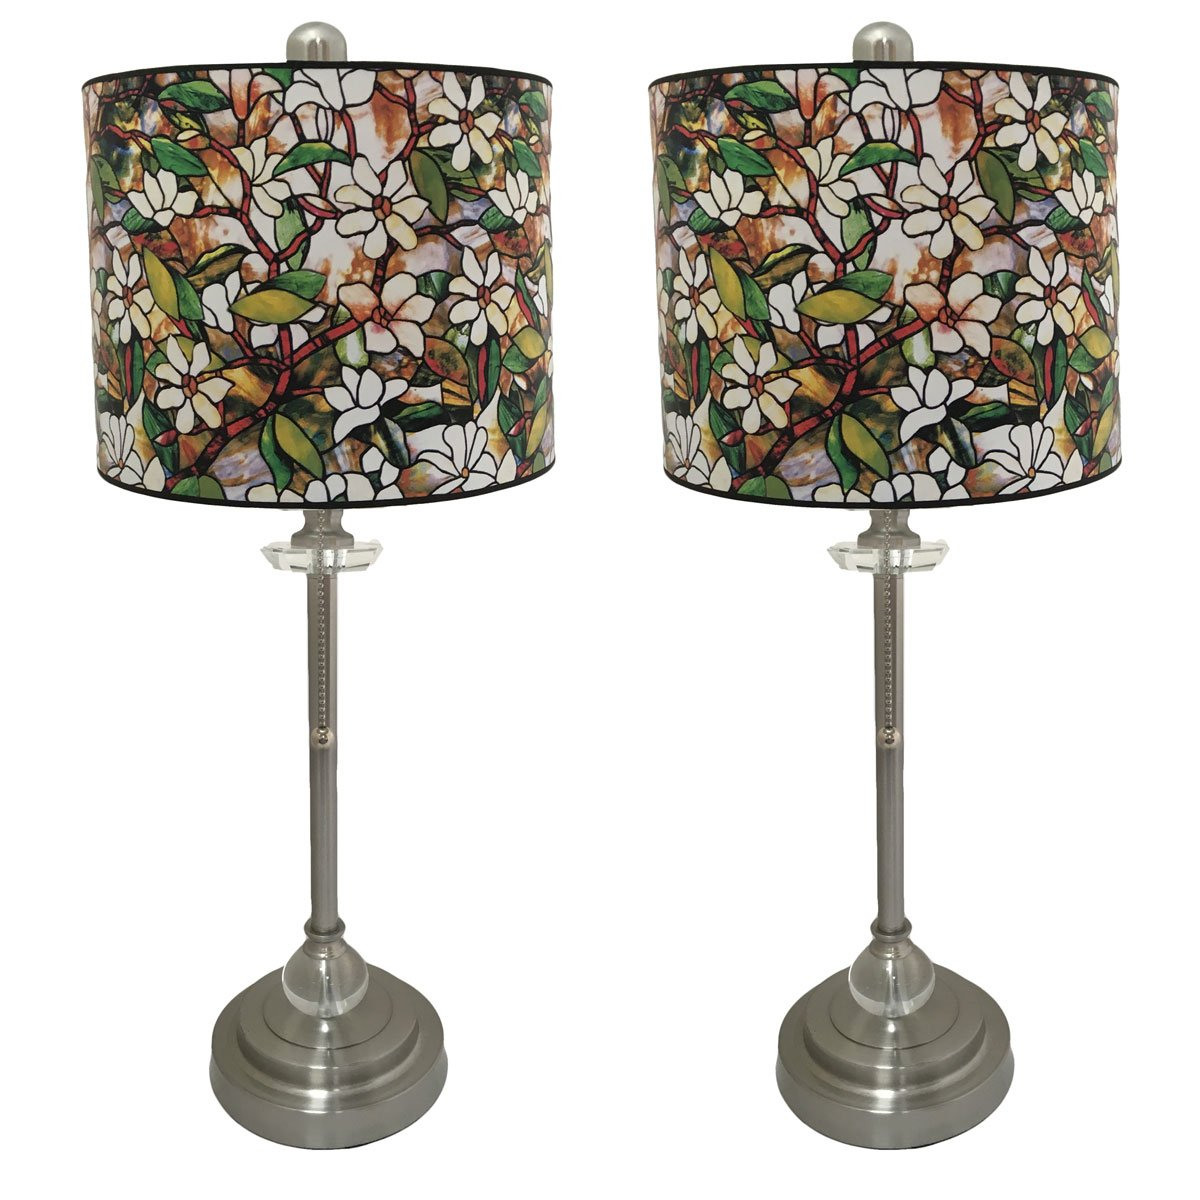 Royal Designs 28 Crystal and Brushed Nickel Buffet Lamp with Magnolia Stained Glass Design Hard Back Lamp Shade, Set of 2